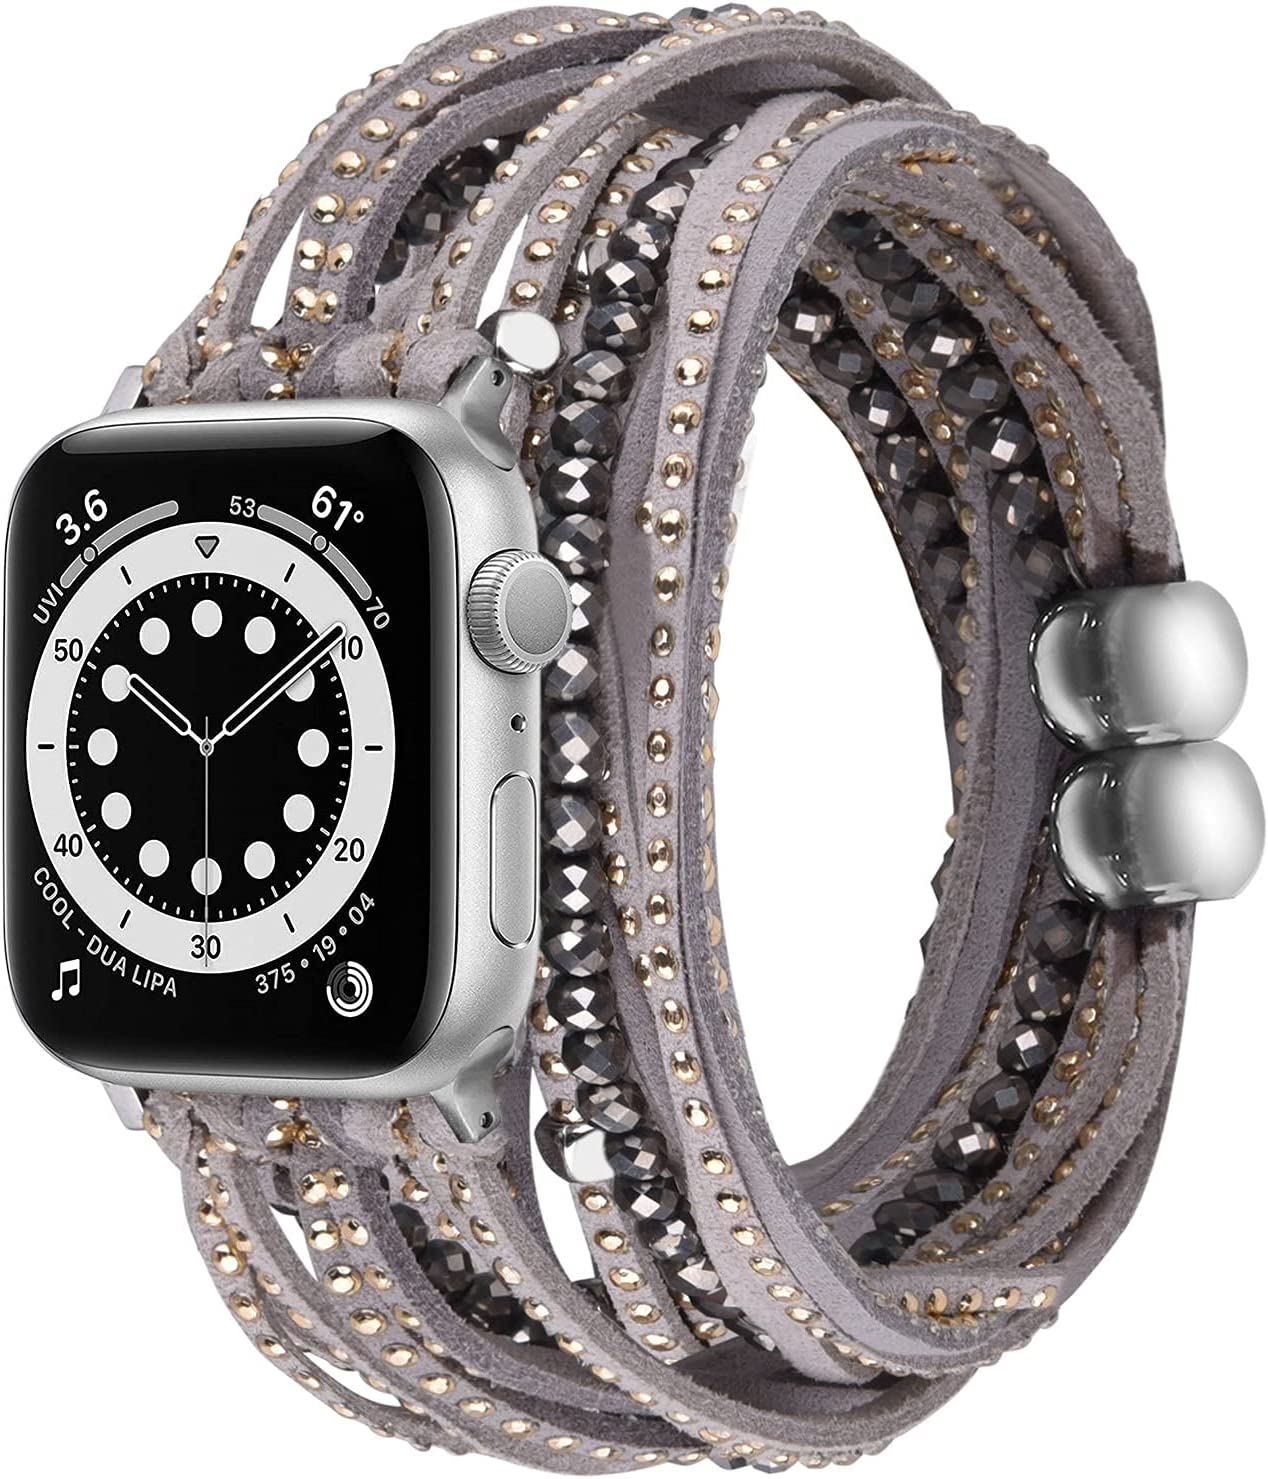 V-MORO Compatible with Apple Watch 38mm 40mm Band Multilayer Wrap Bracelets for Women Suede Leather with Handmade Boho Bead Strap Replacement for iWatch Series 6/5/4/3/2/1/SE,Fit for 5.1